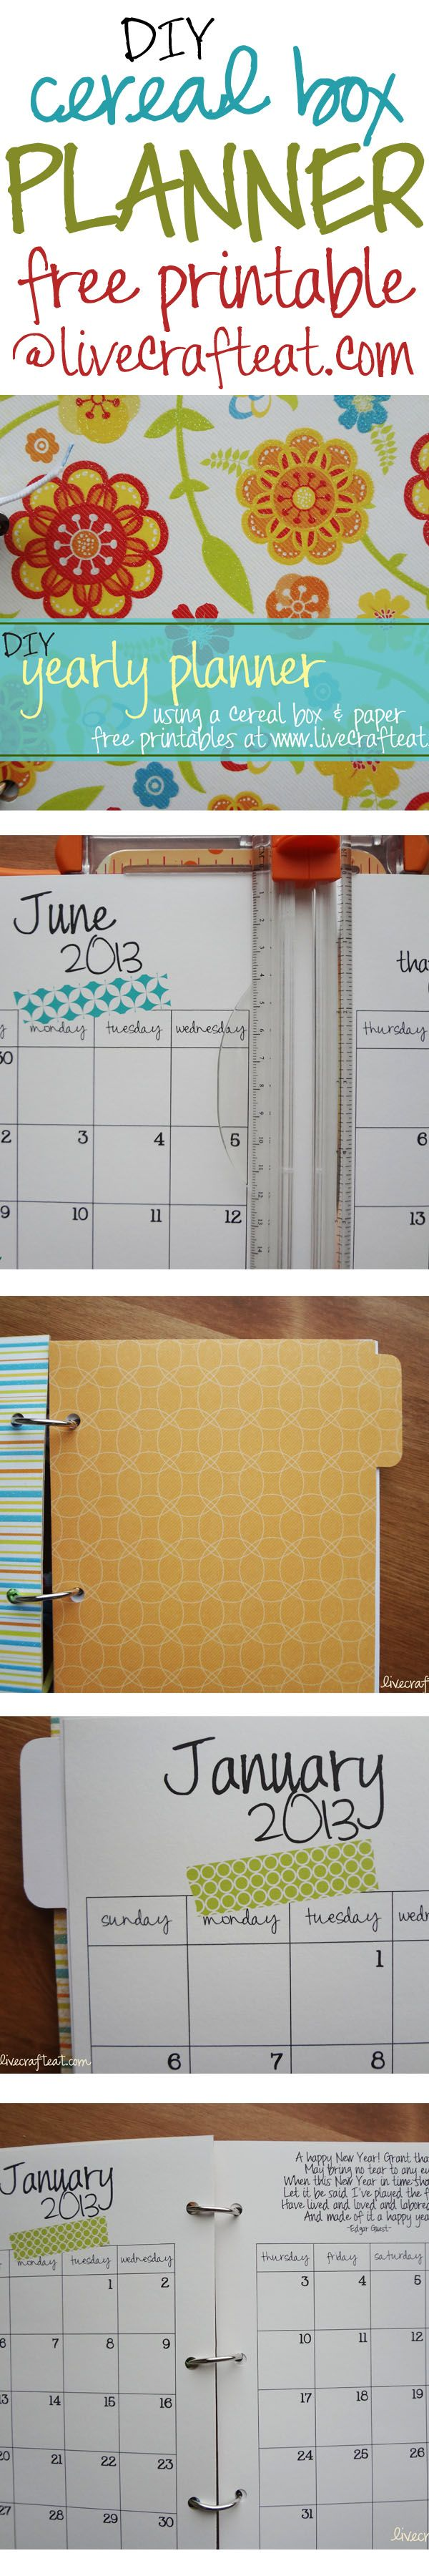 Diy Planner From A Cereal Box 2013 Free Printables Ideer